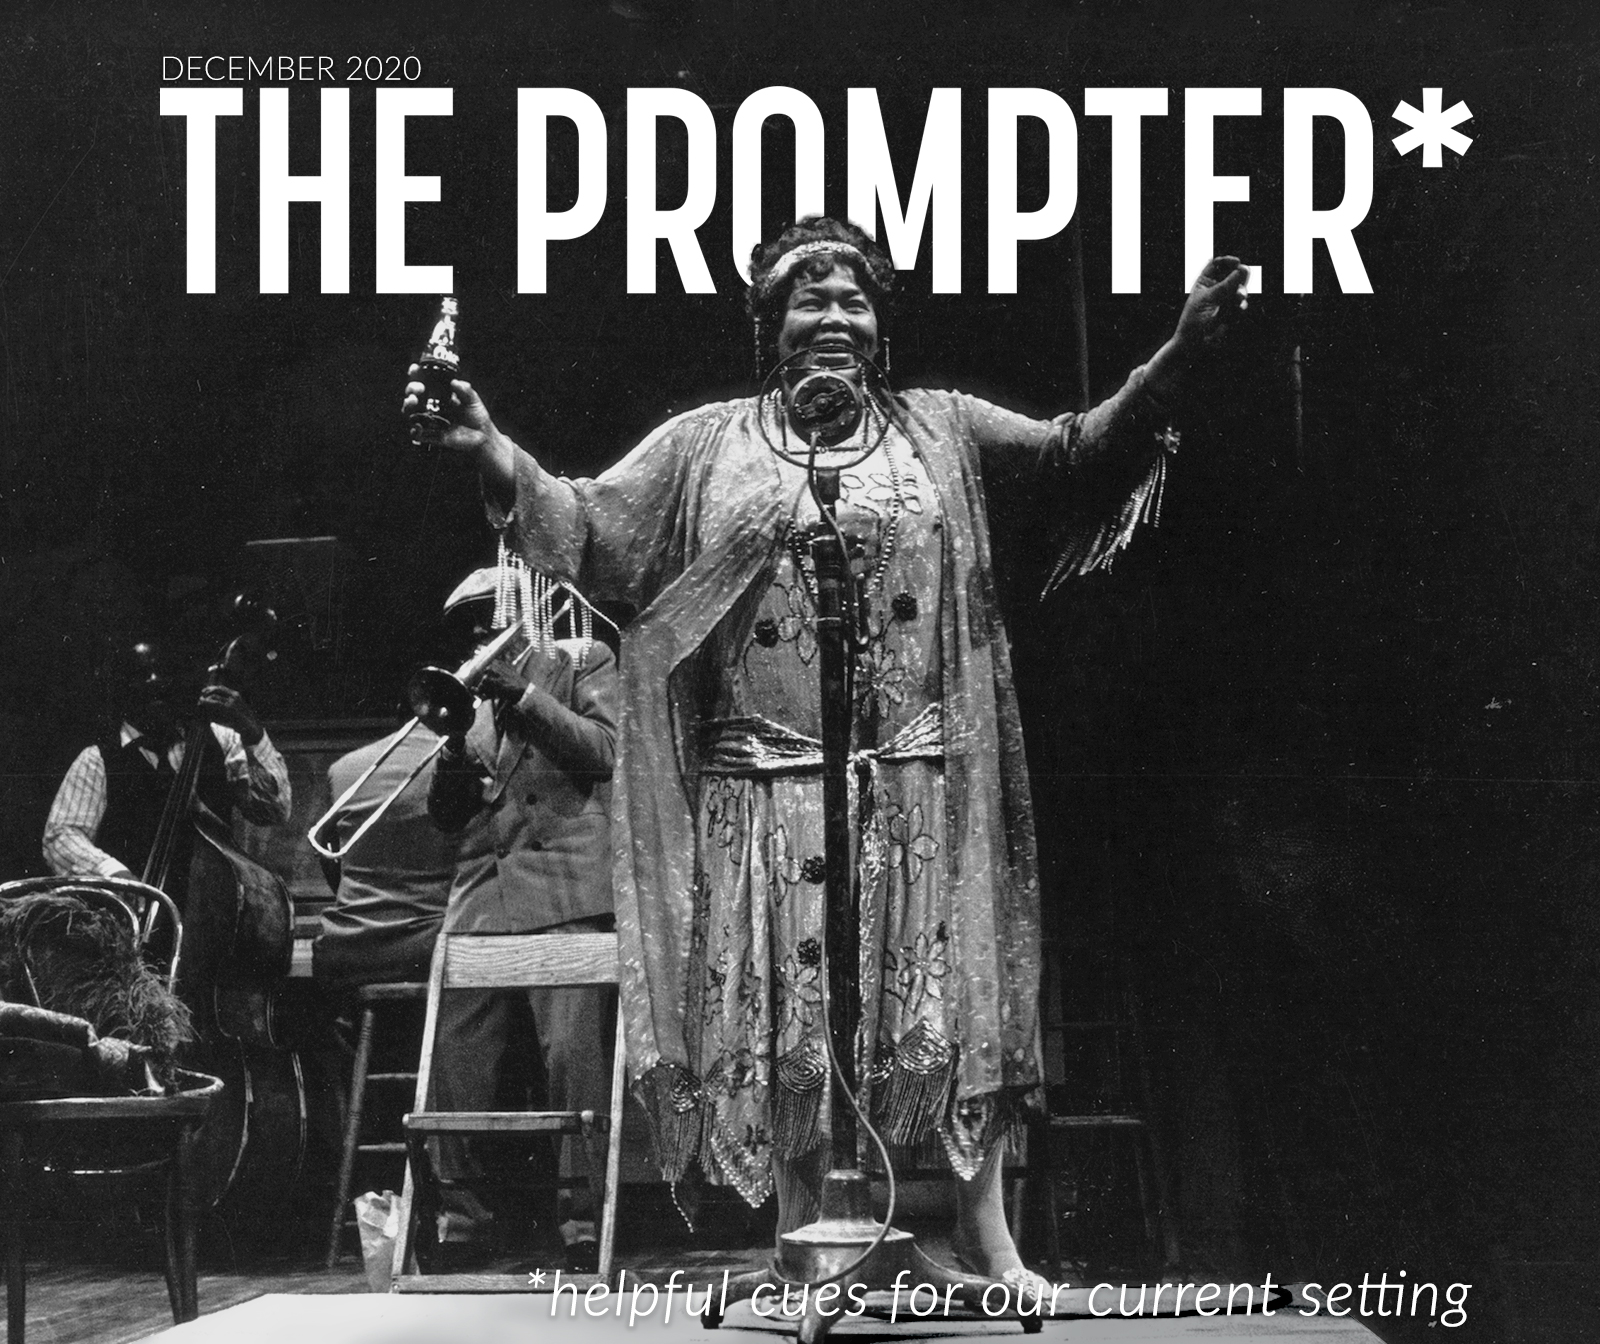 The Prompter - December 16, 2020